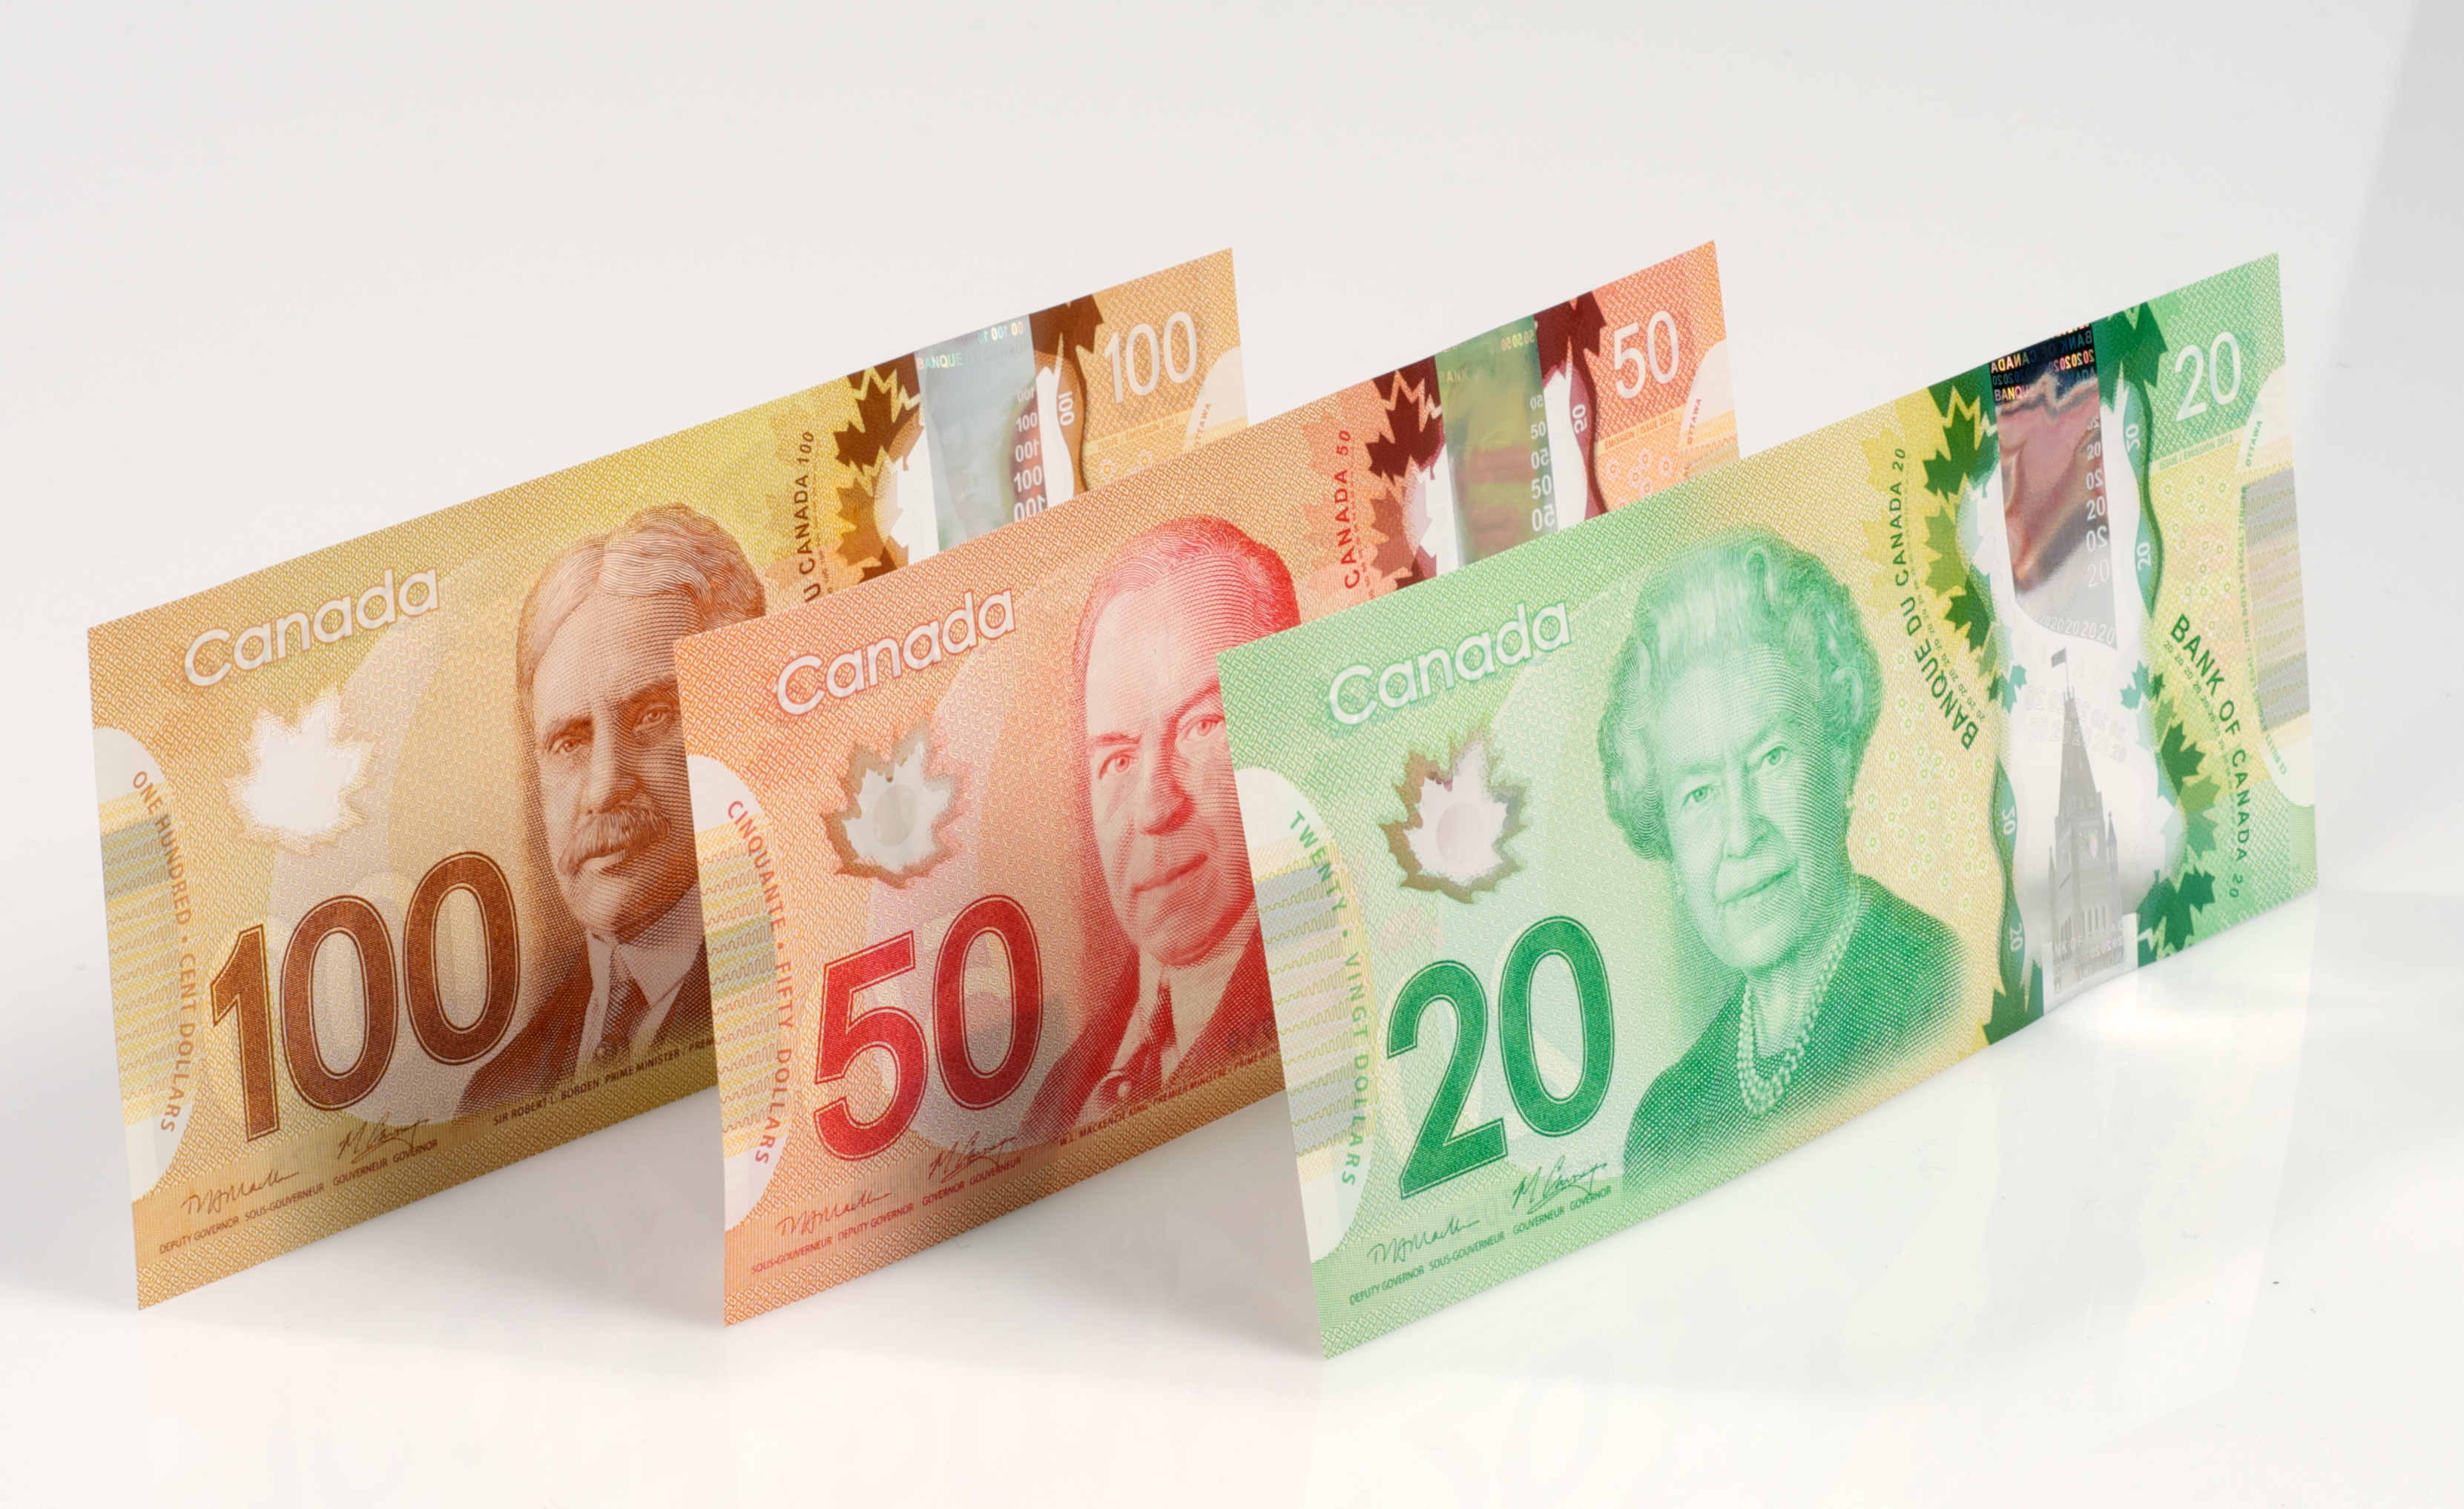 What's up with canada's currency?